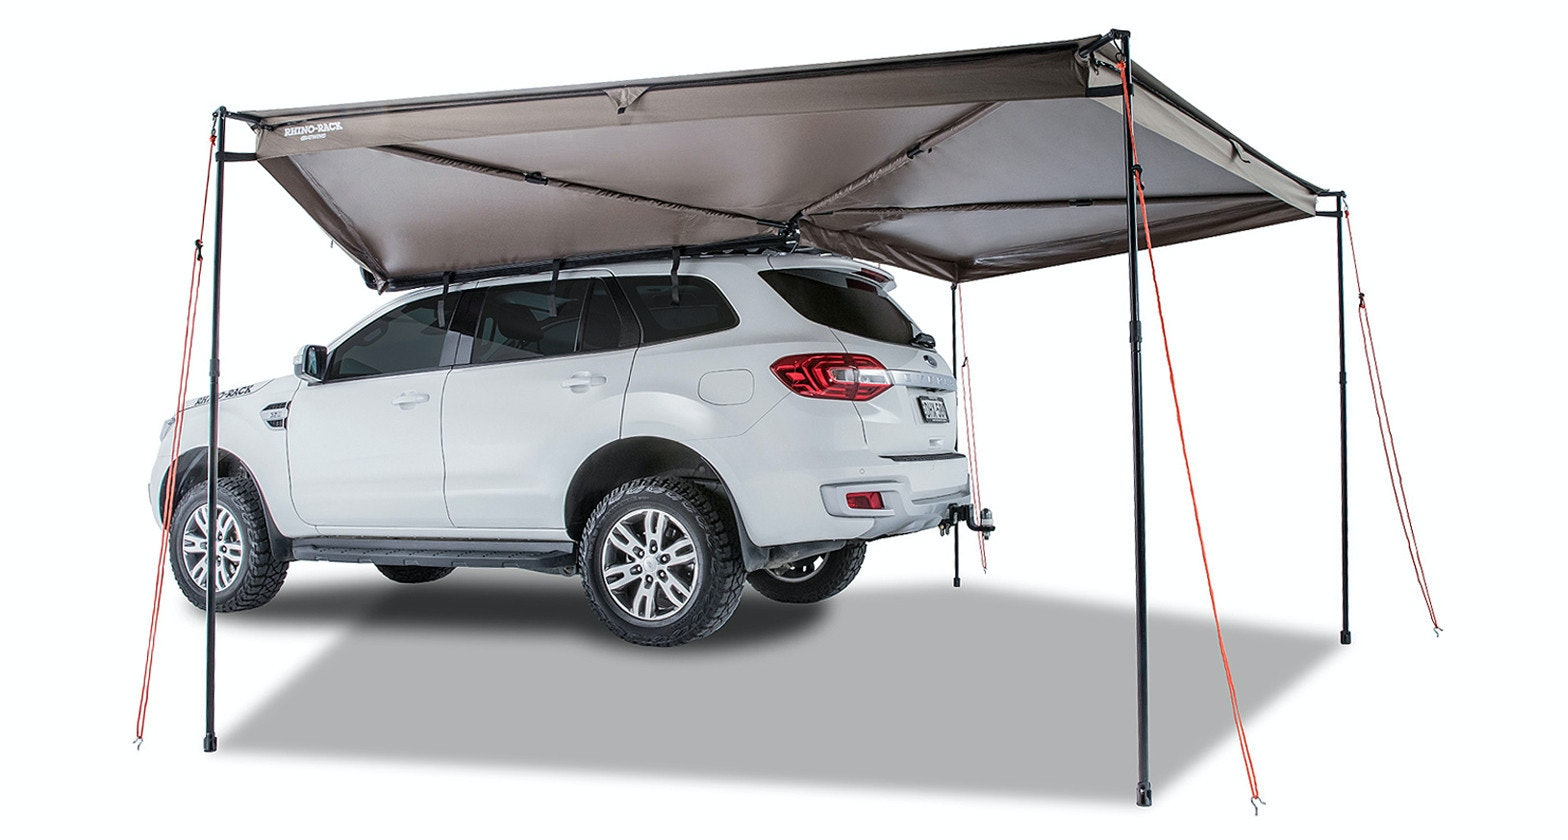 Awning, Shade, Roof, Tent, Tire, Vehicle, Railing, Gumtree, Square meter, Campervans, Rhino-Rack, motor vehicle, vehicle, technology, automotive exterior, vehicle door, mode of transport, bumper, car, transport, metal